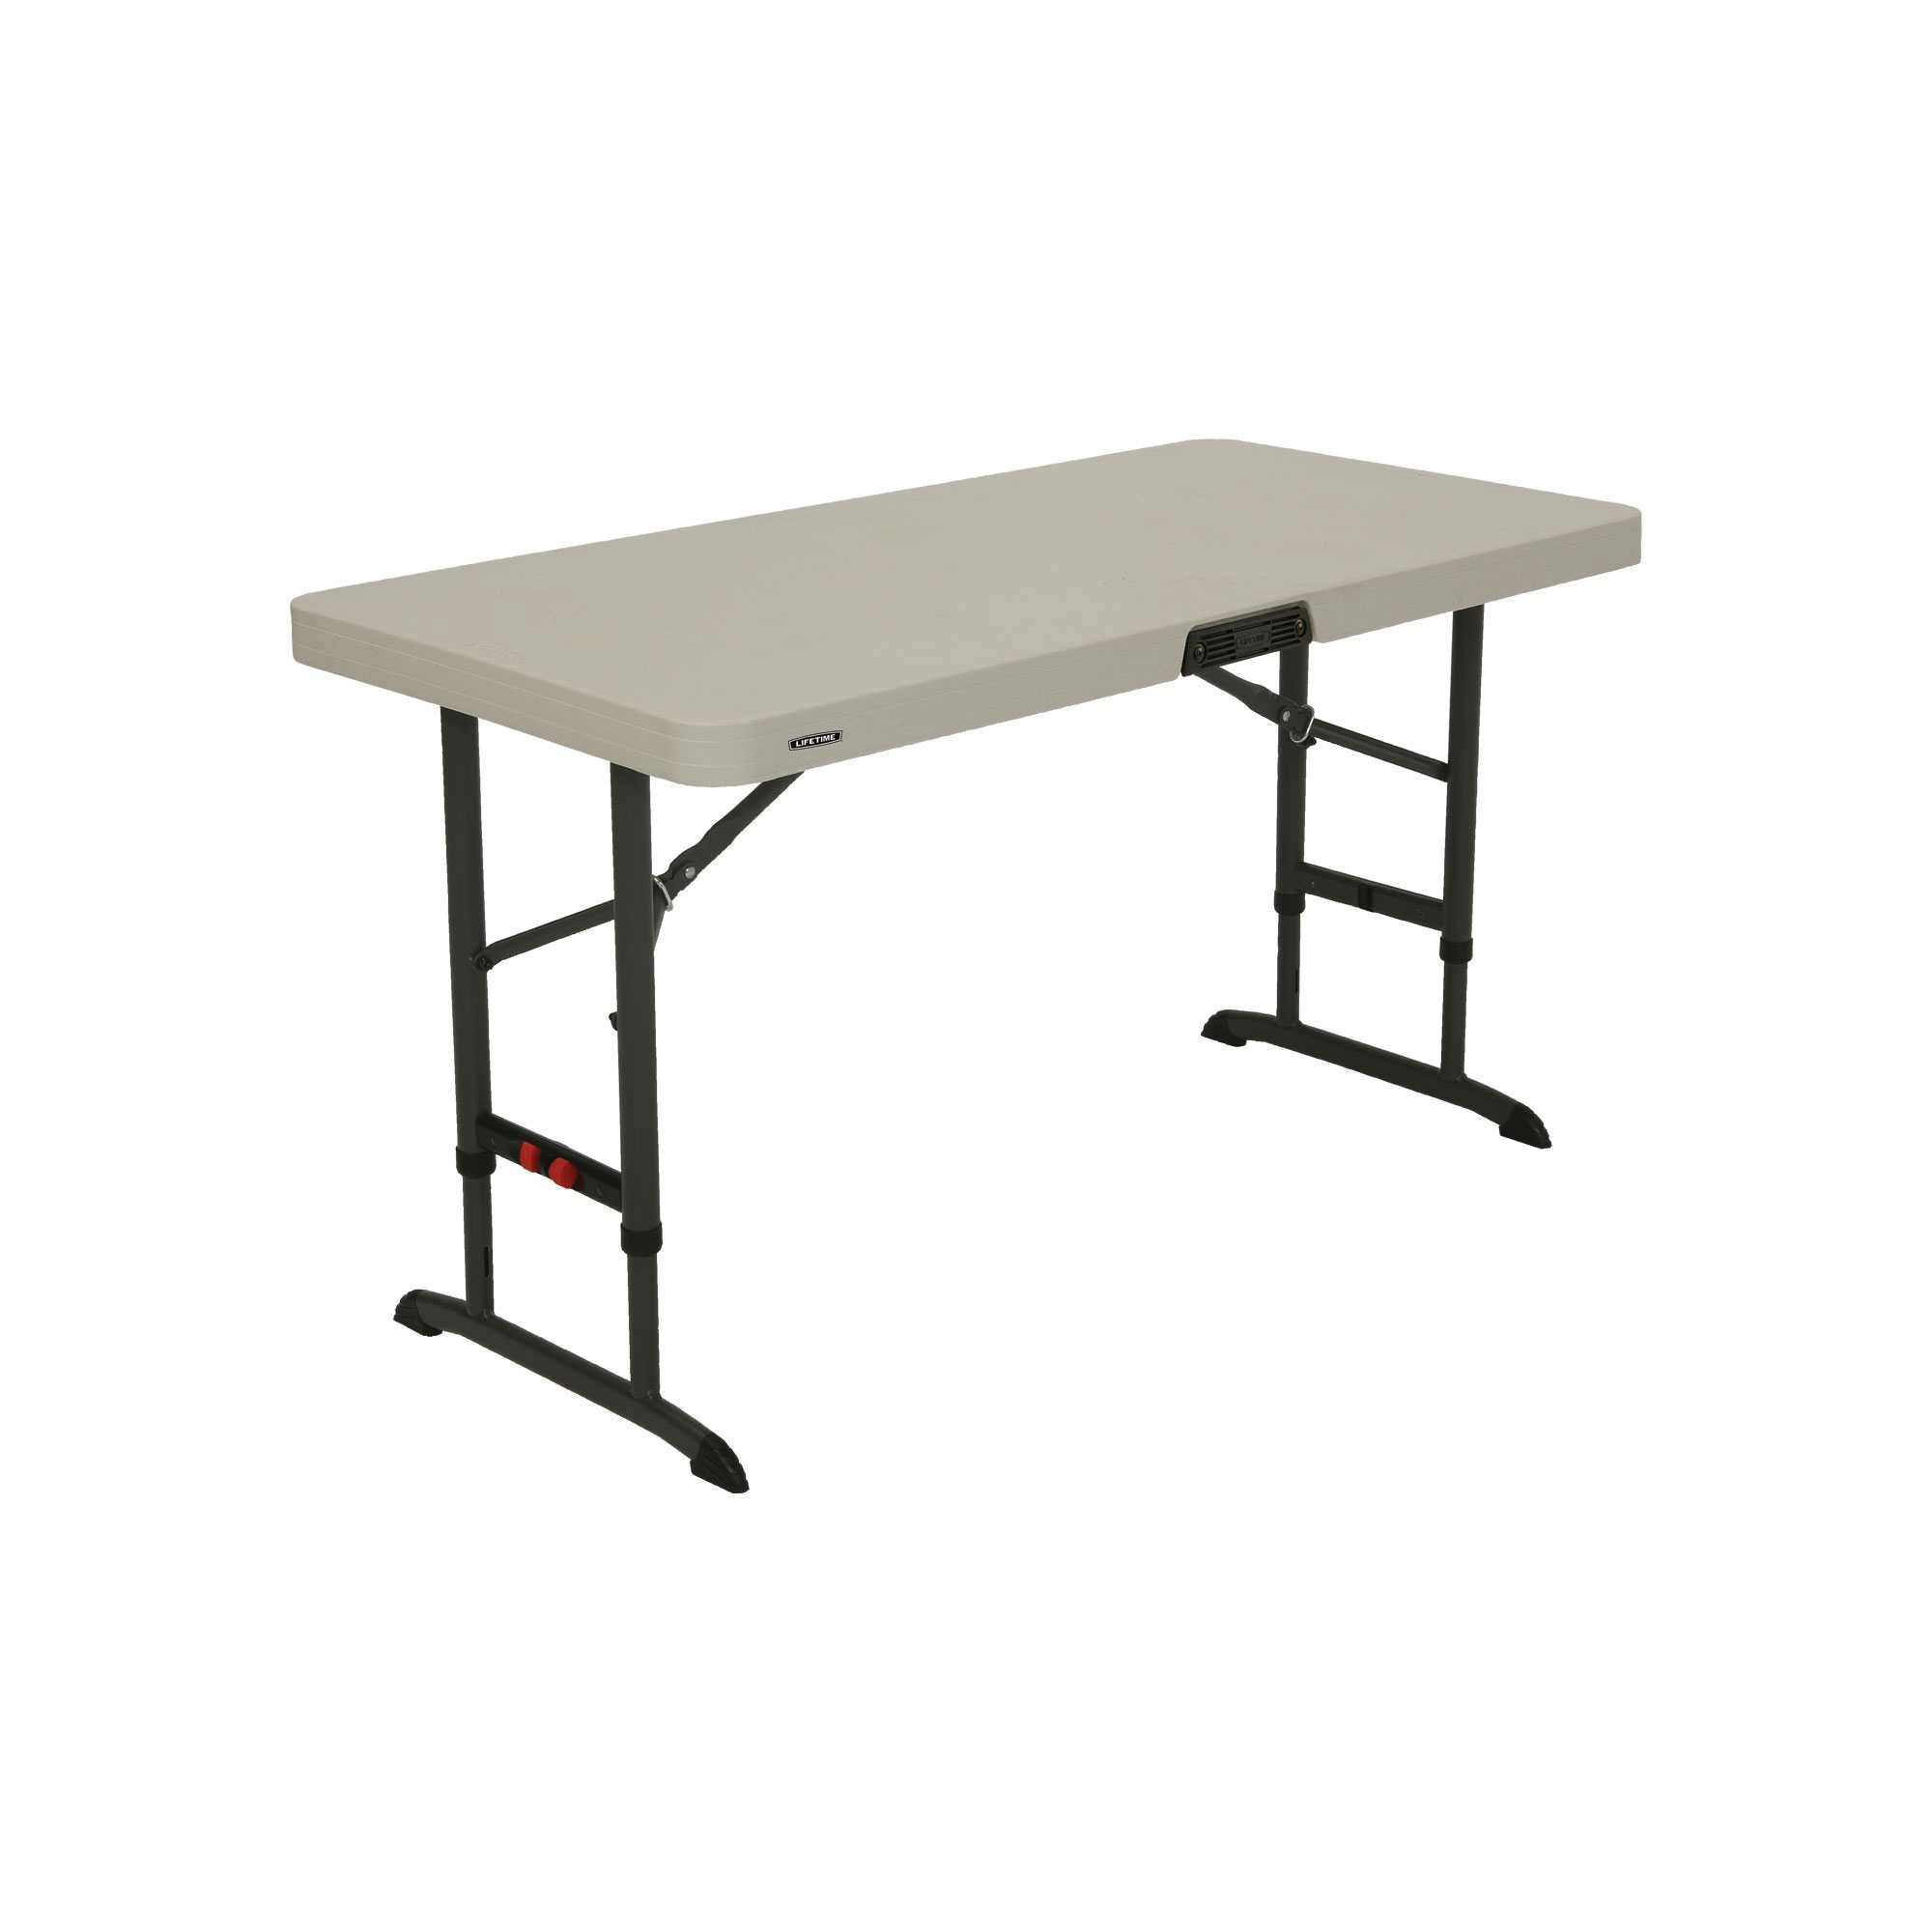 4 foot commercial adjustable folding table almond 80370 pallet pack. Black Bedroom Furniture Sets. Home Design Ideas